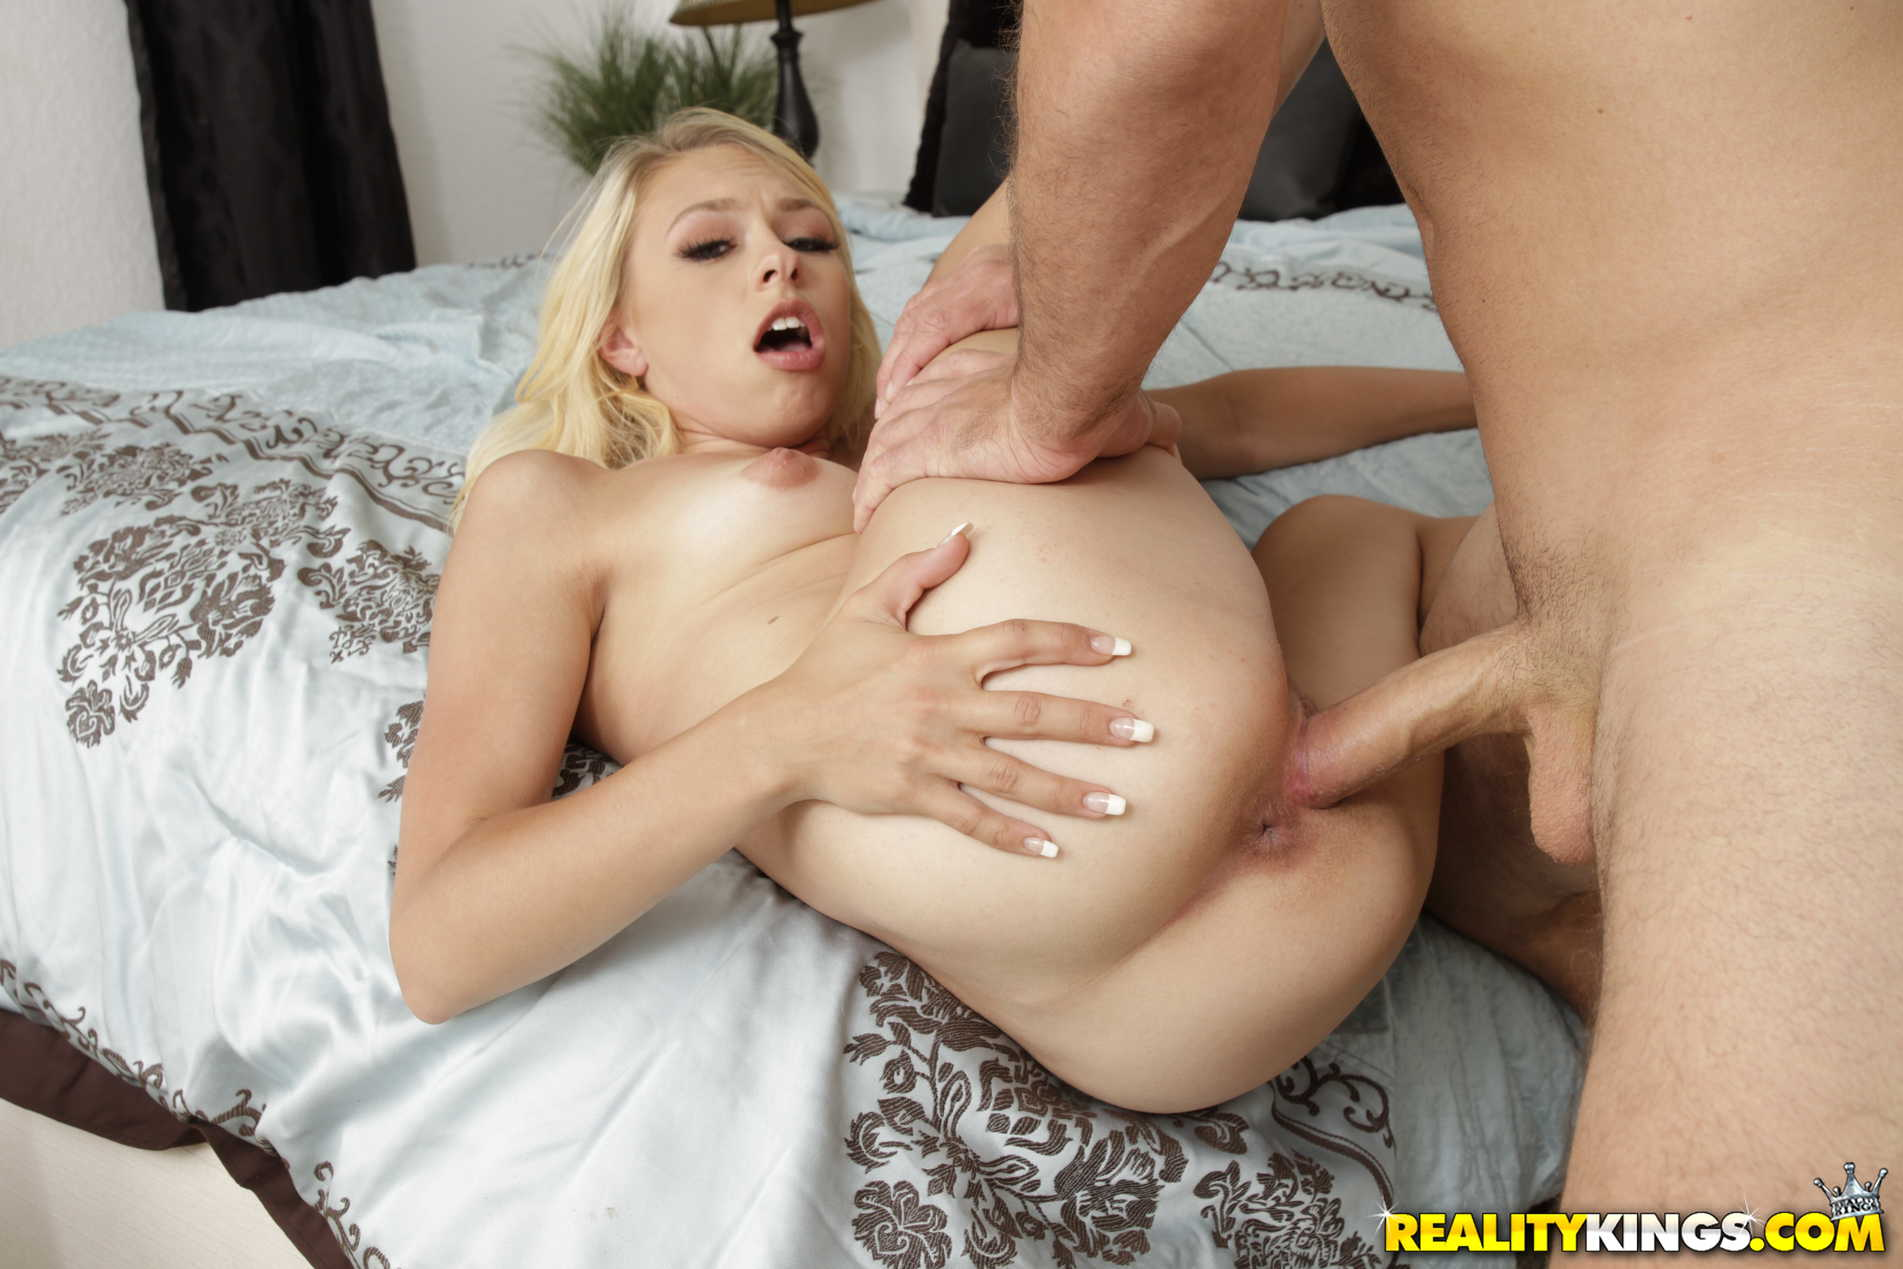 Reality Kings 'Deliver Me The Cock' starring Zoe Clark (photo 144)